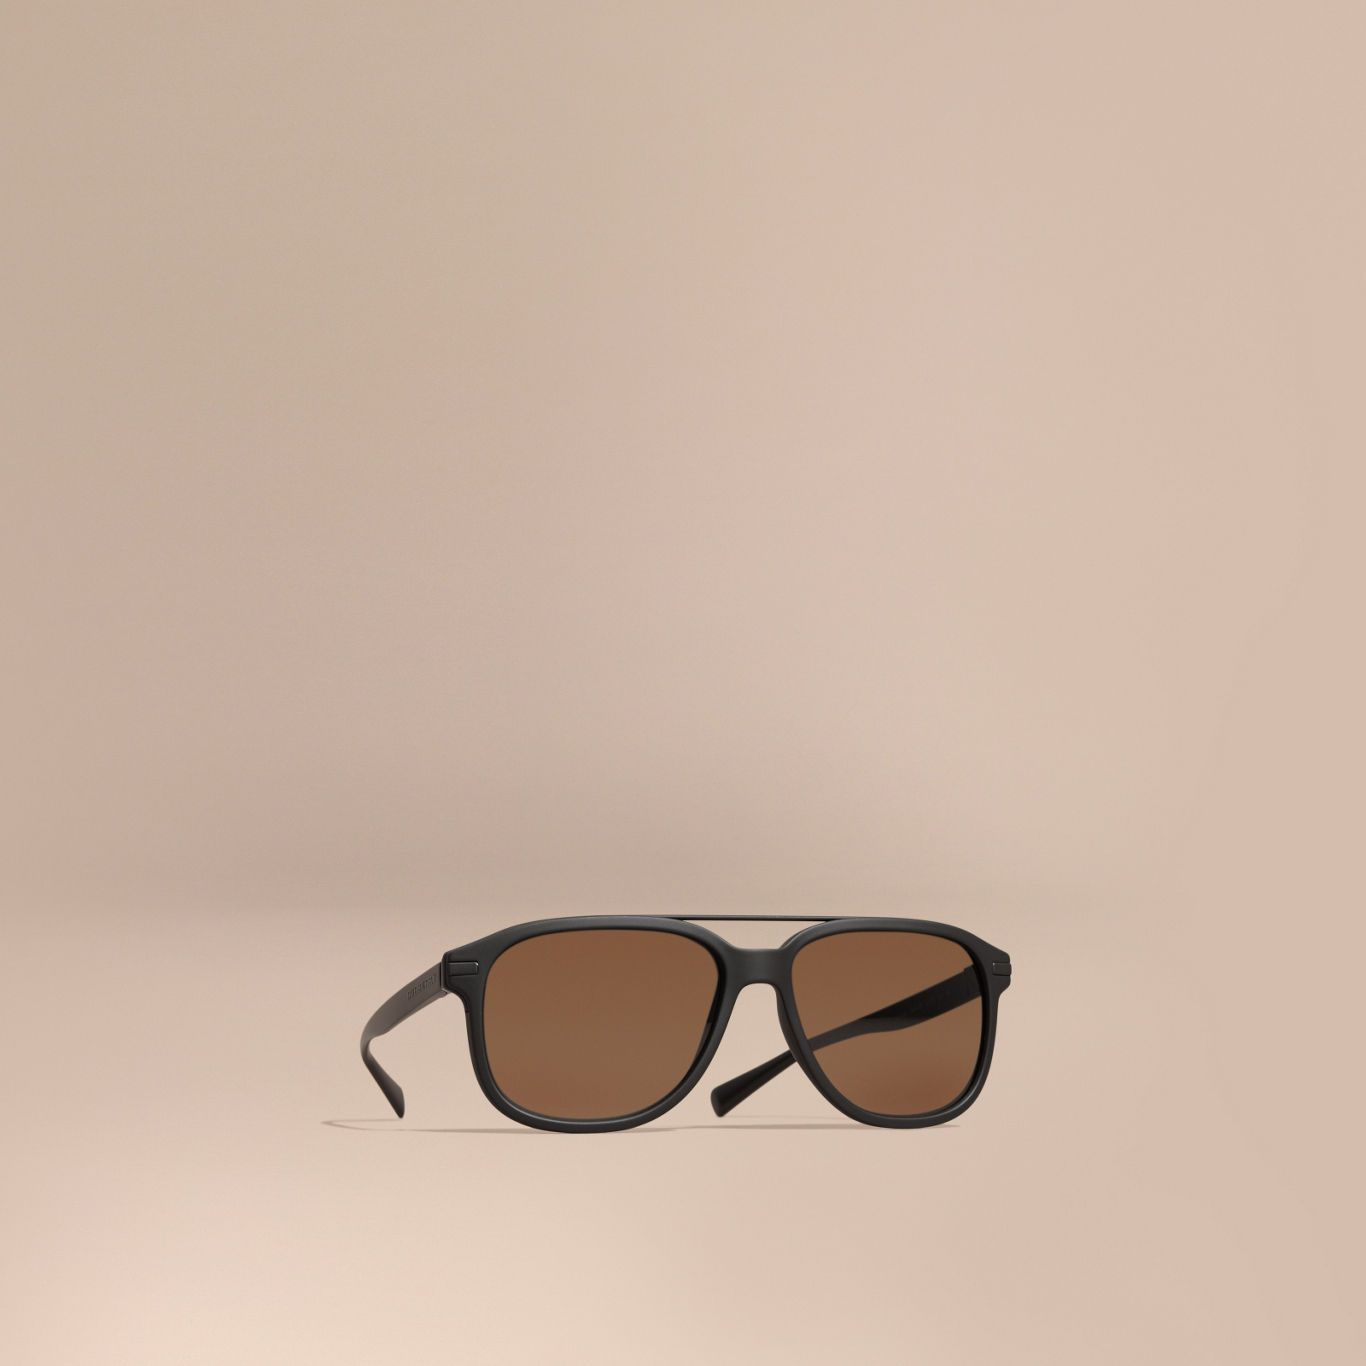 443a9903c40a Italian-made sunglasses in matte black acetate with a square frame and top  bar.